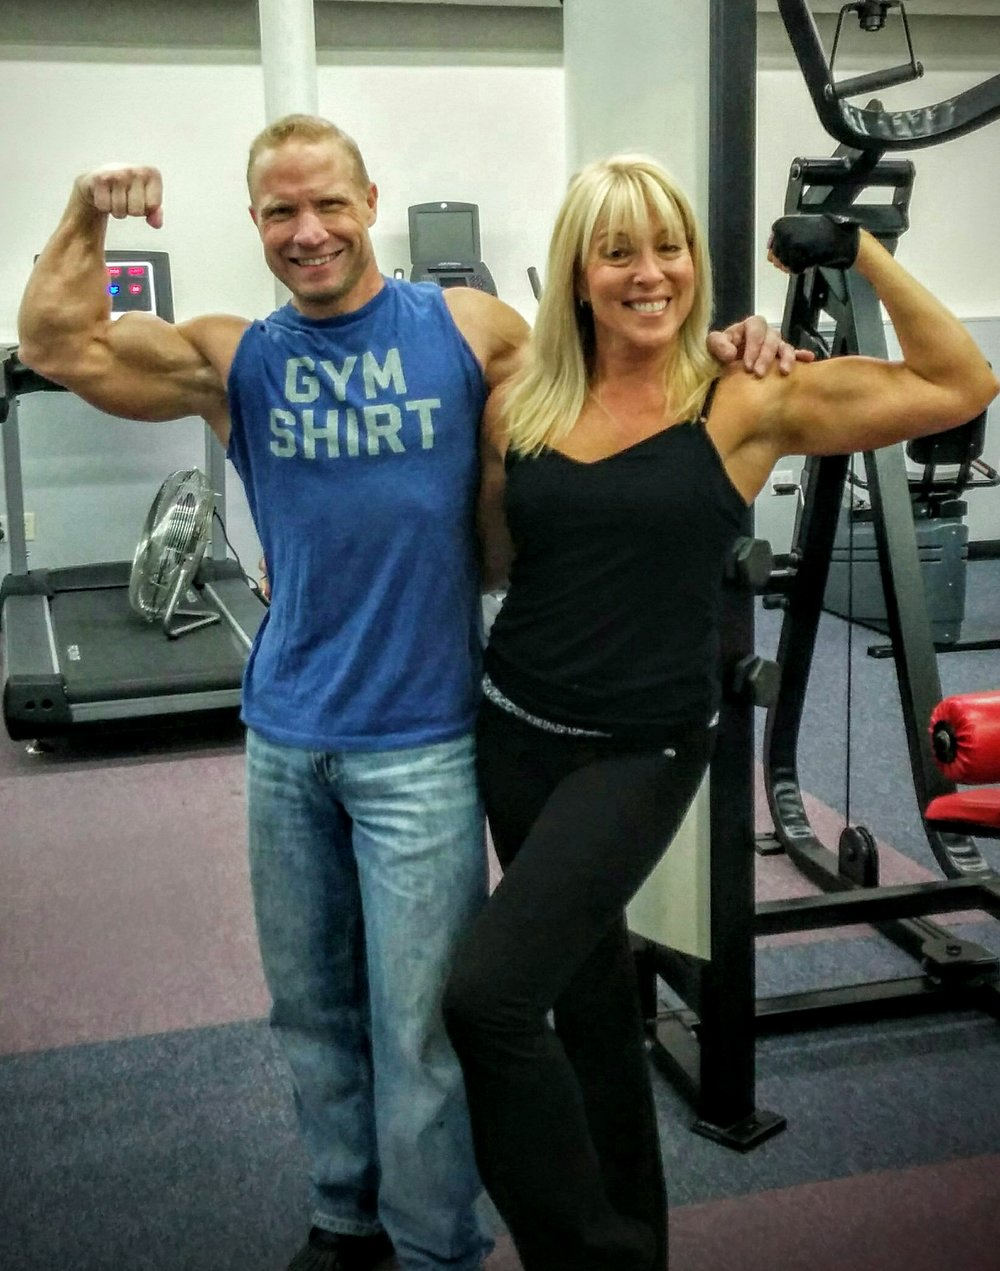 Your fitness pros - Jeff & Jodi practicing what we preach at over 50 years of age. -